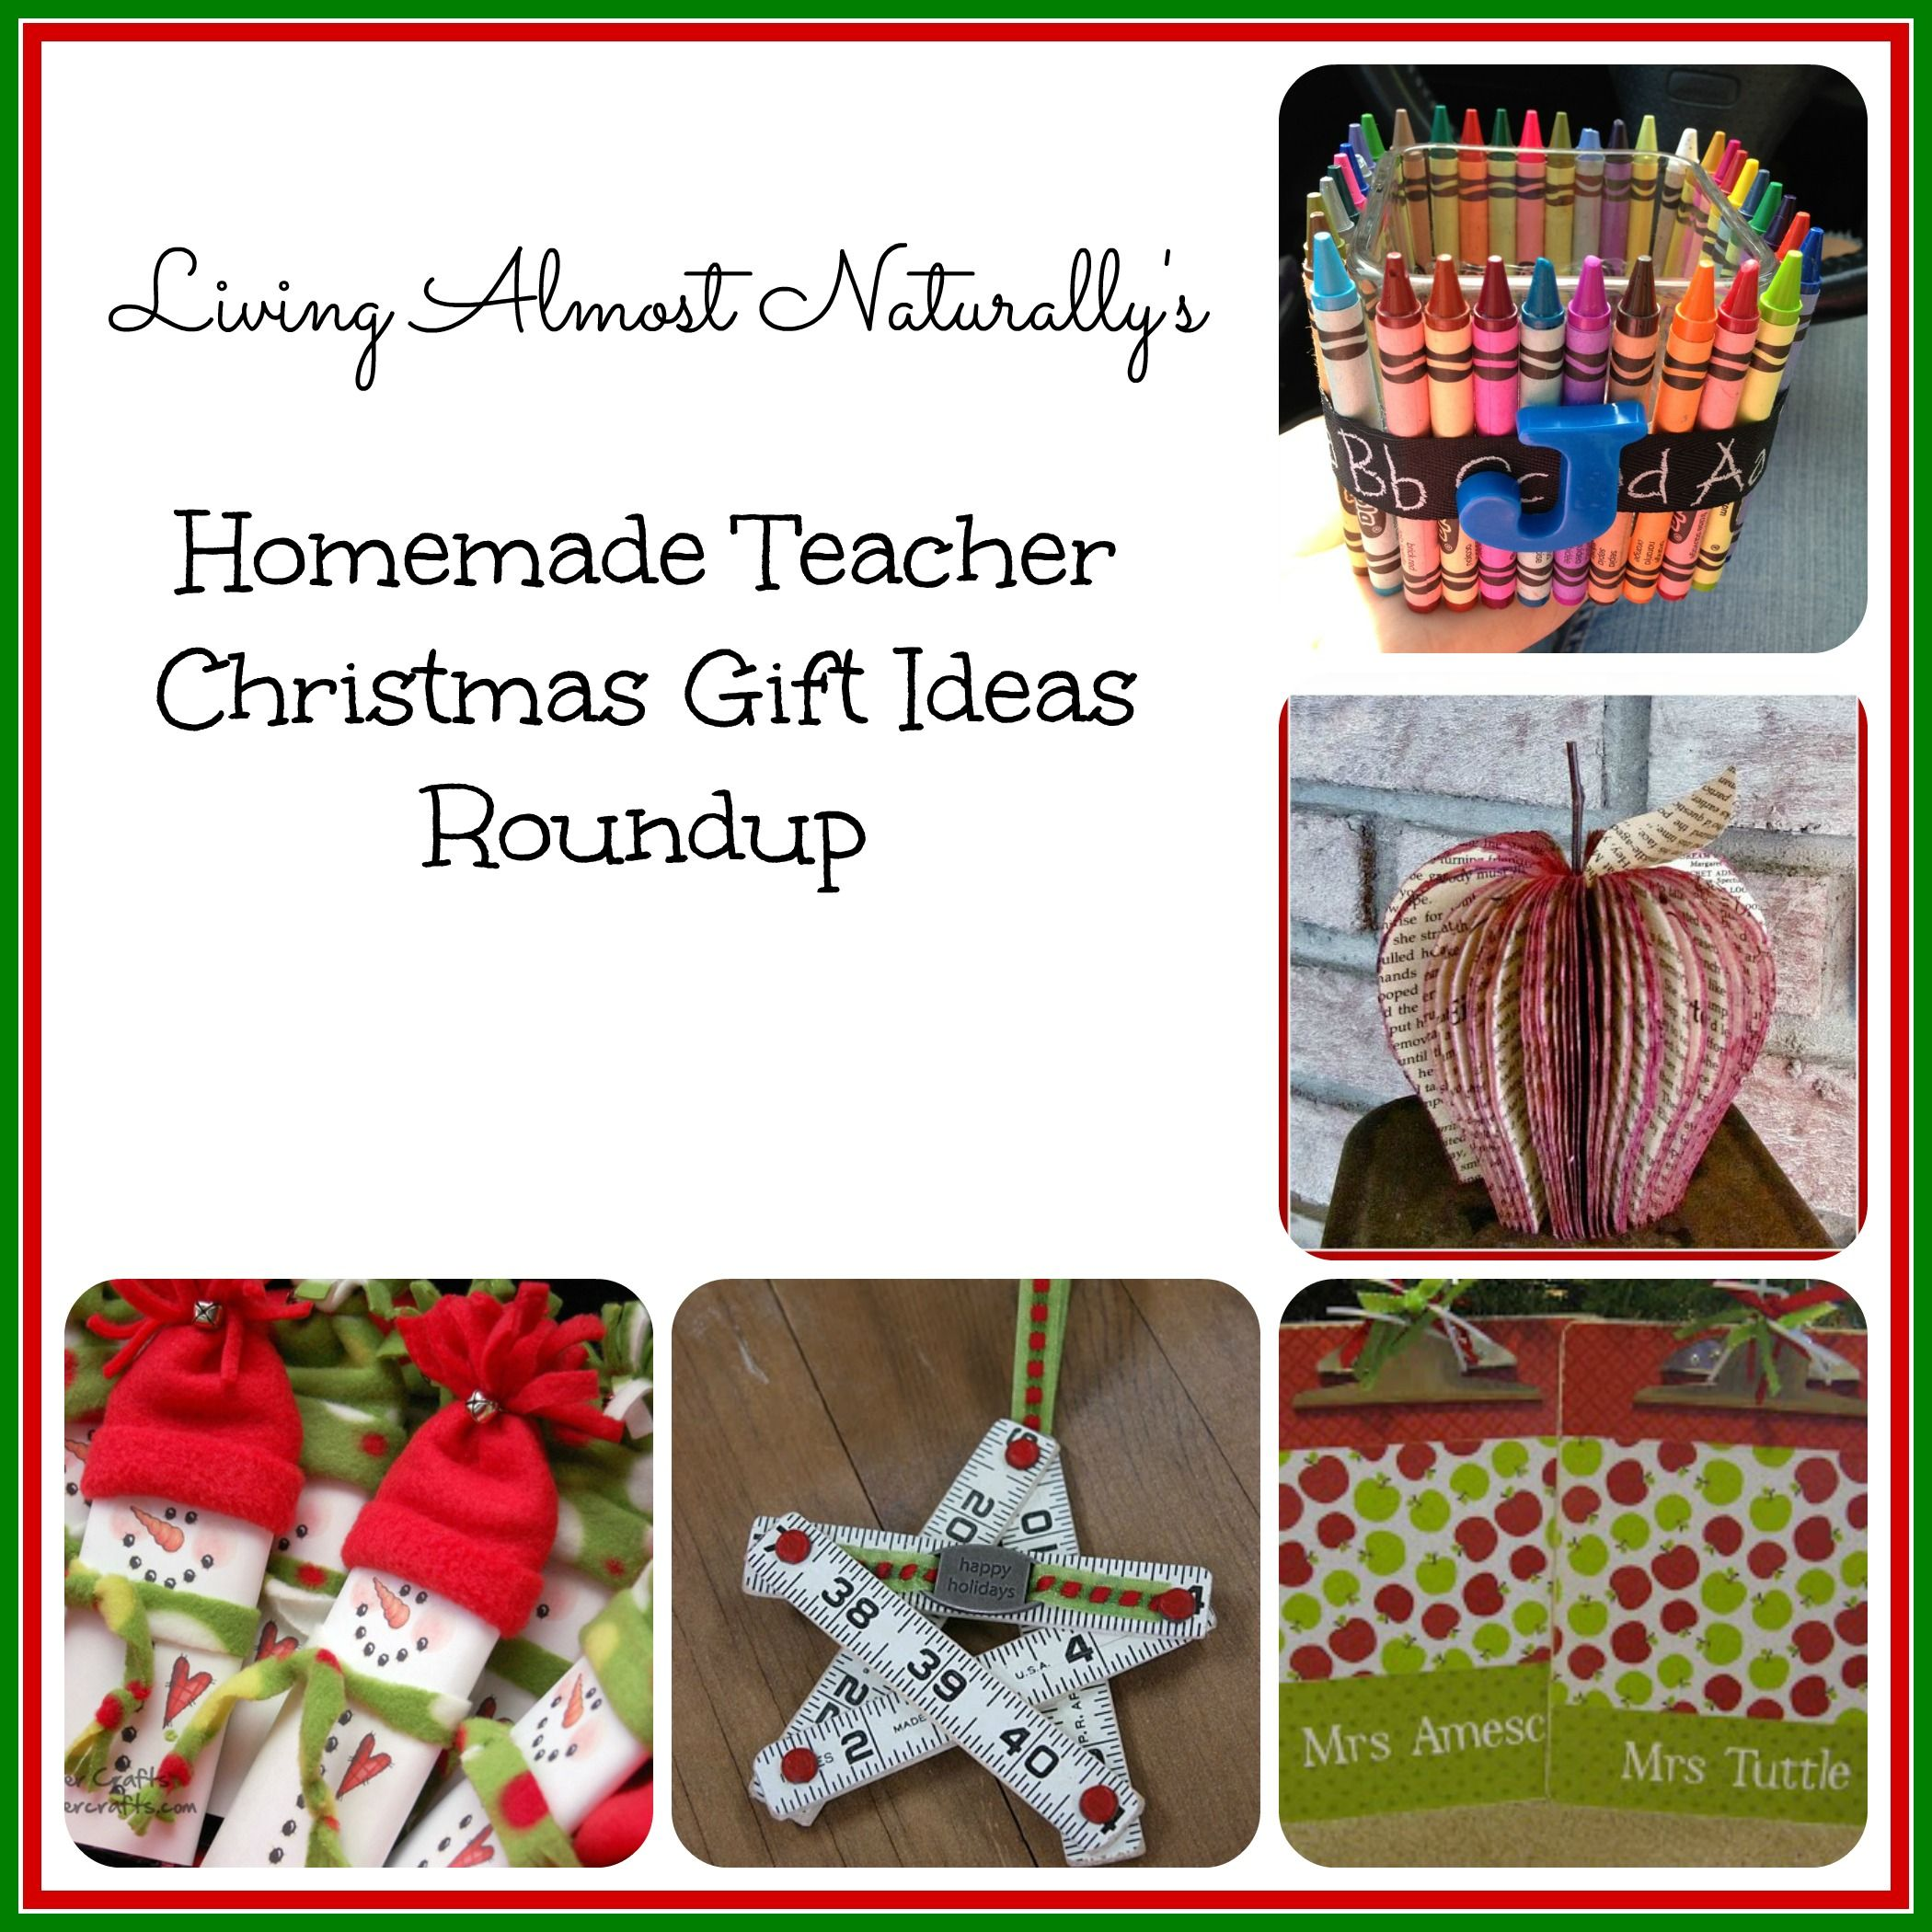 Pin by Shanel van Jaarsveld on Xmas | Pinterest | Homemade christmas ...